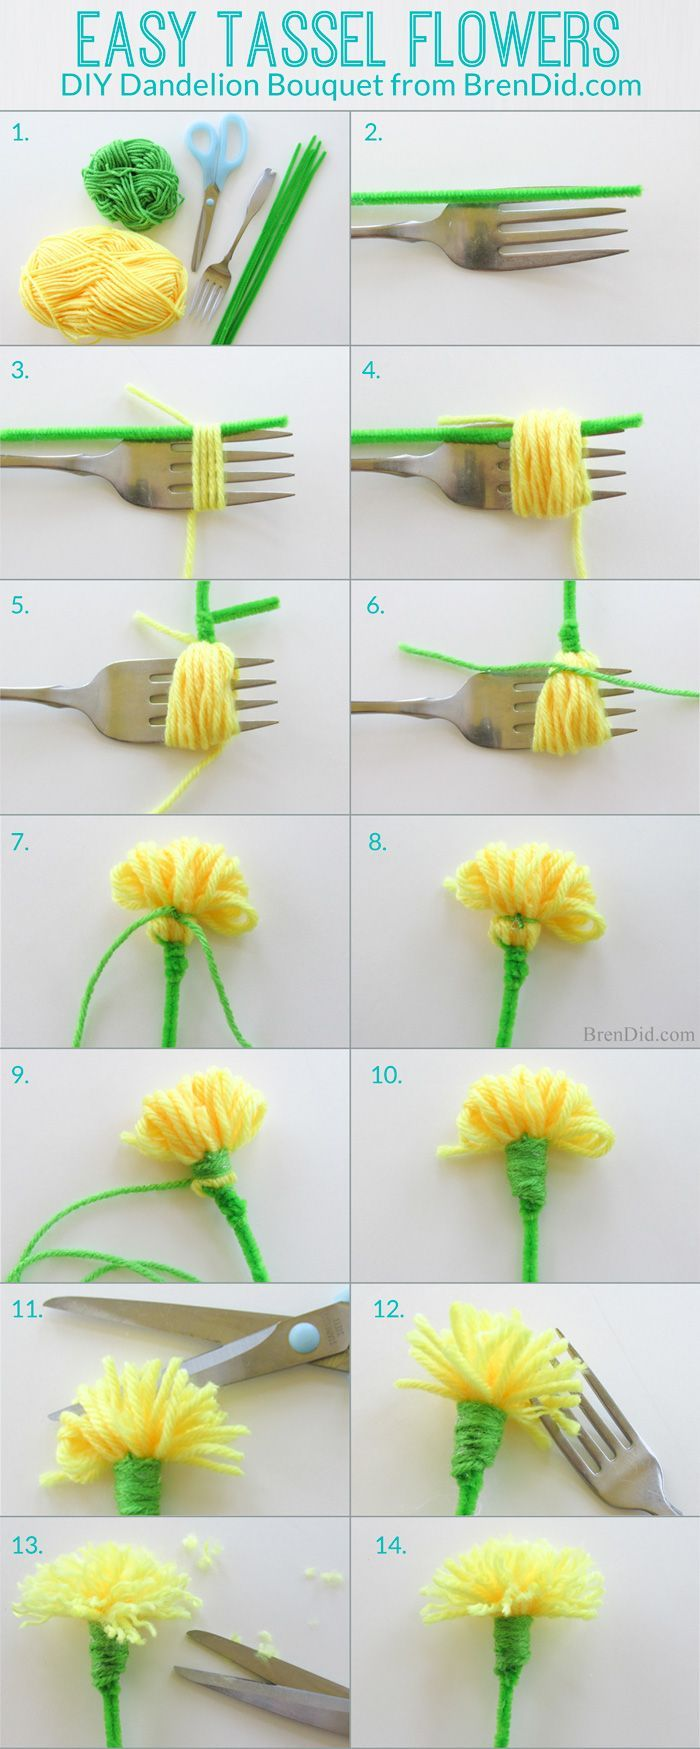 Easy Tassel Flowers: DIY Dandelion Bouquet - Bren Did